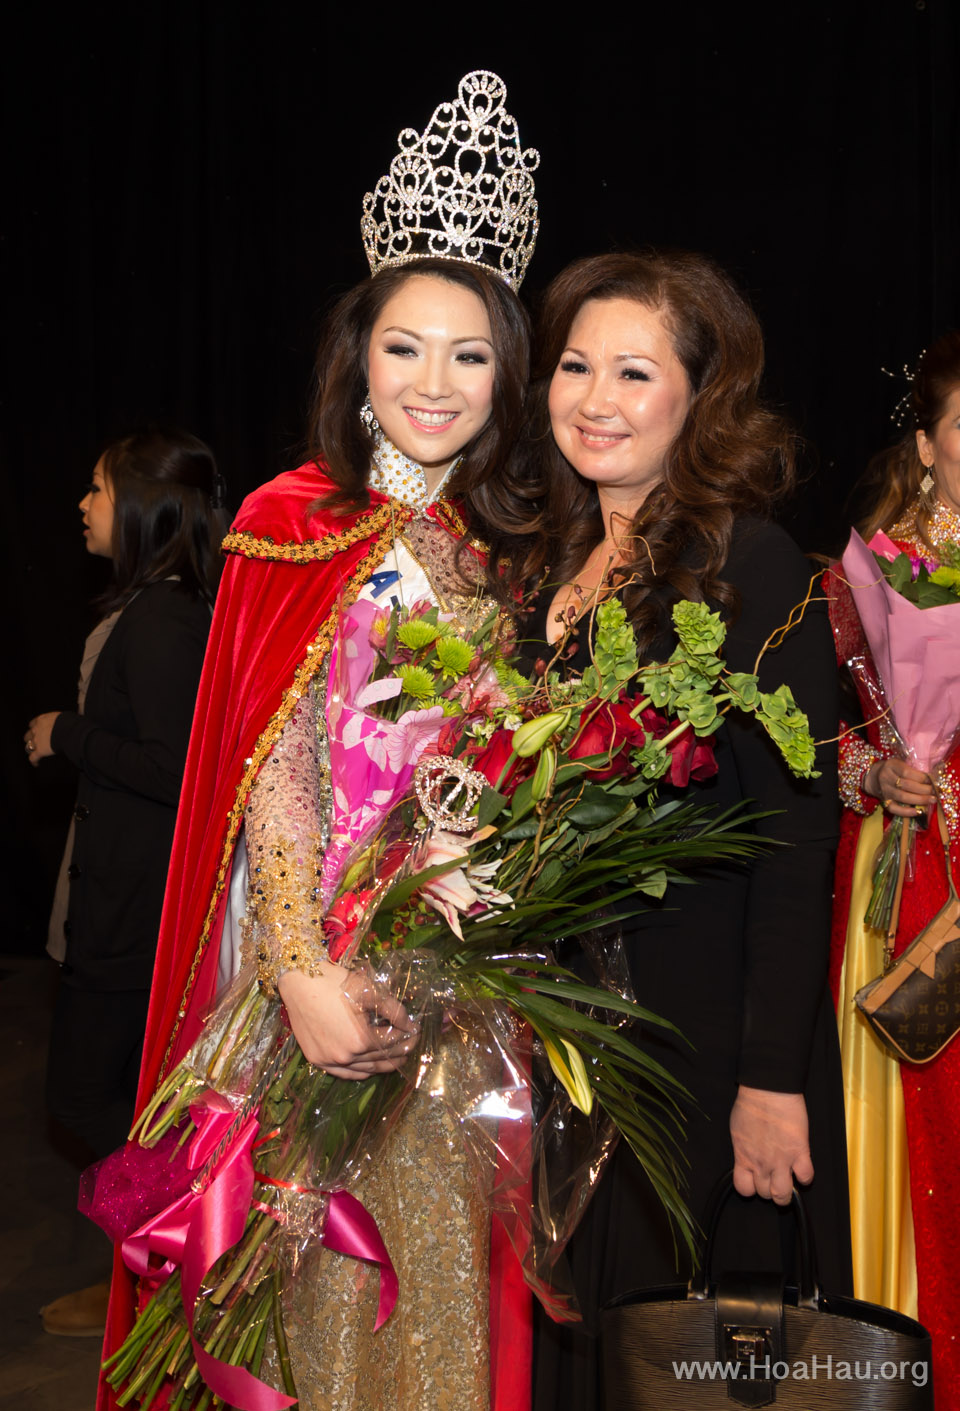 Miss Vietnam of Northern California 2014 - Hoa Hau Ao Dai Bac Cali 2014 - Behind the Scenes - Image 308